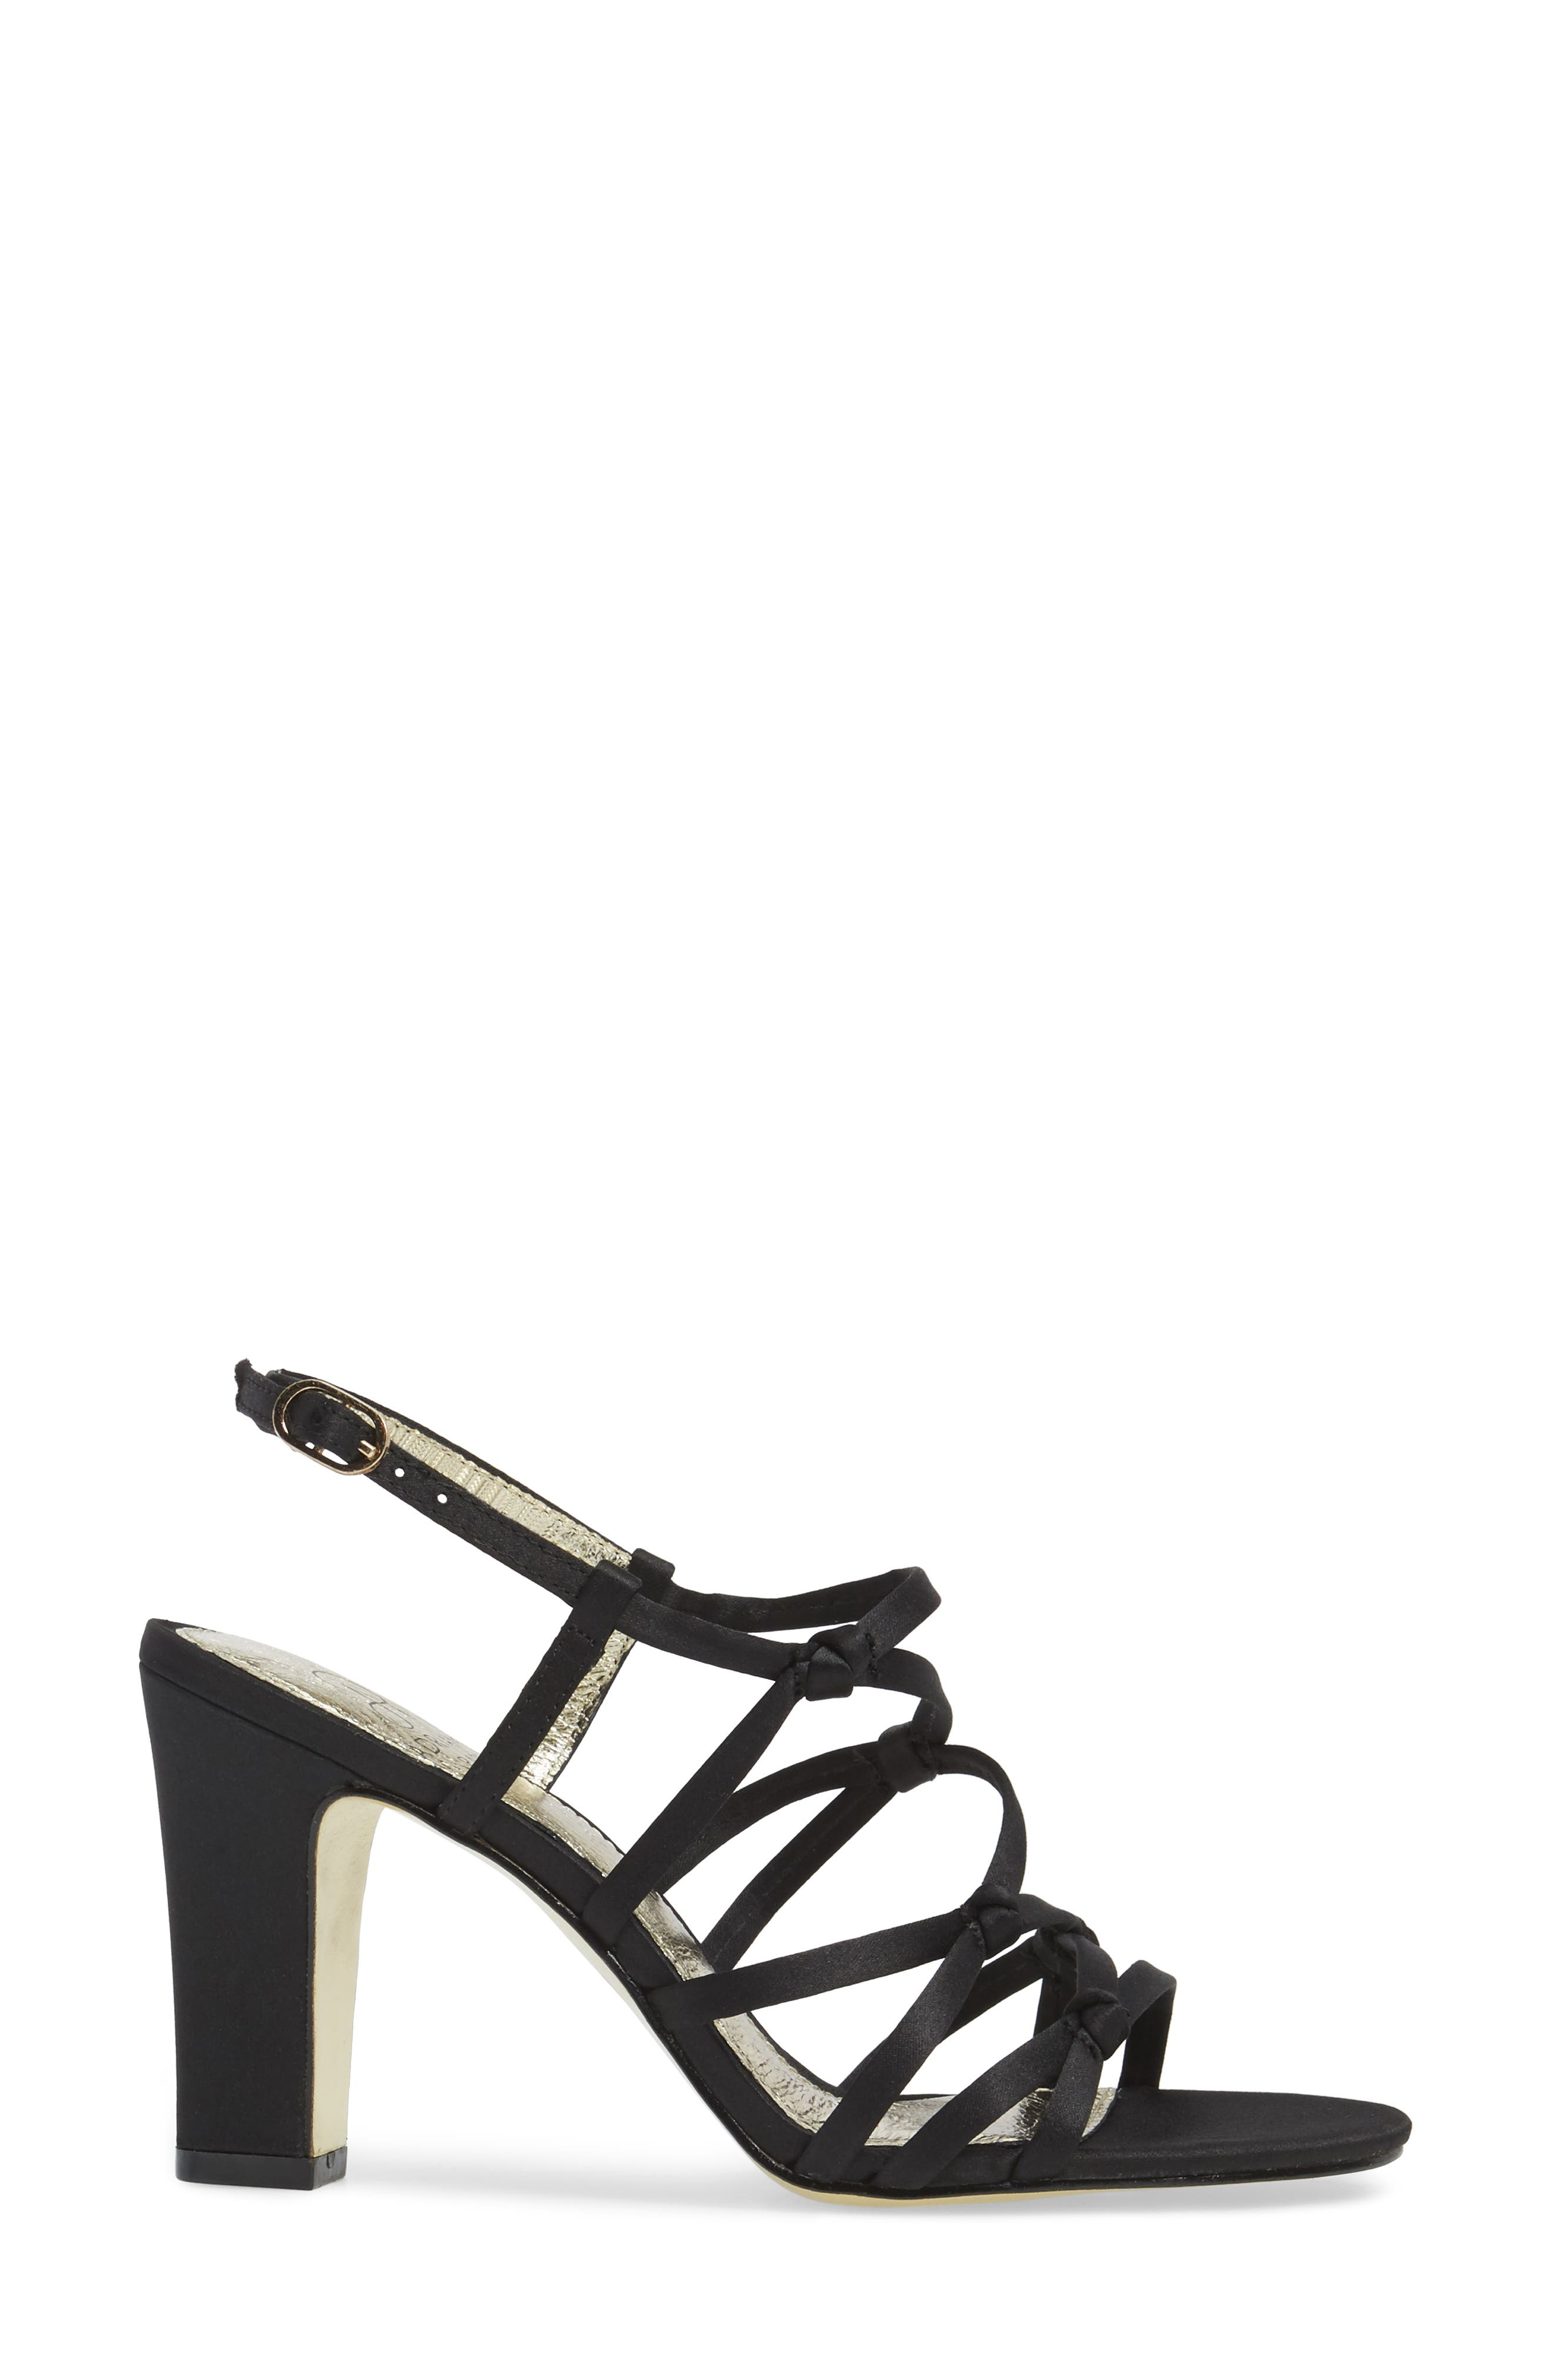 Adelson Knotted Strappy Sandal,                             Alternate thumbnail 3, color,                             001